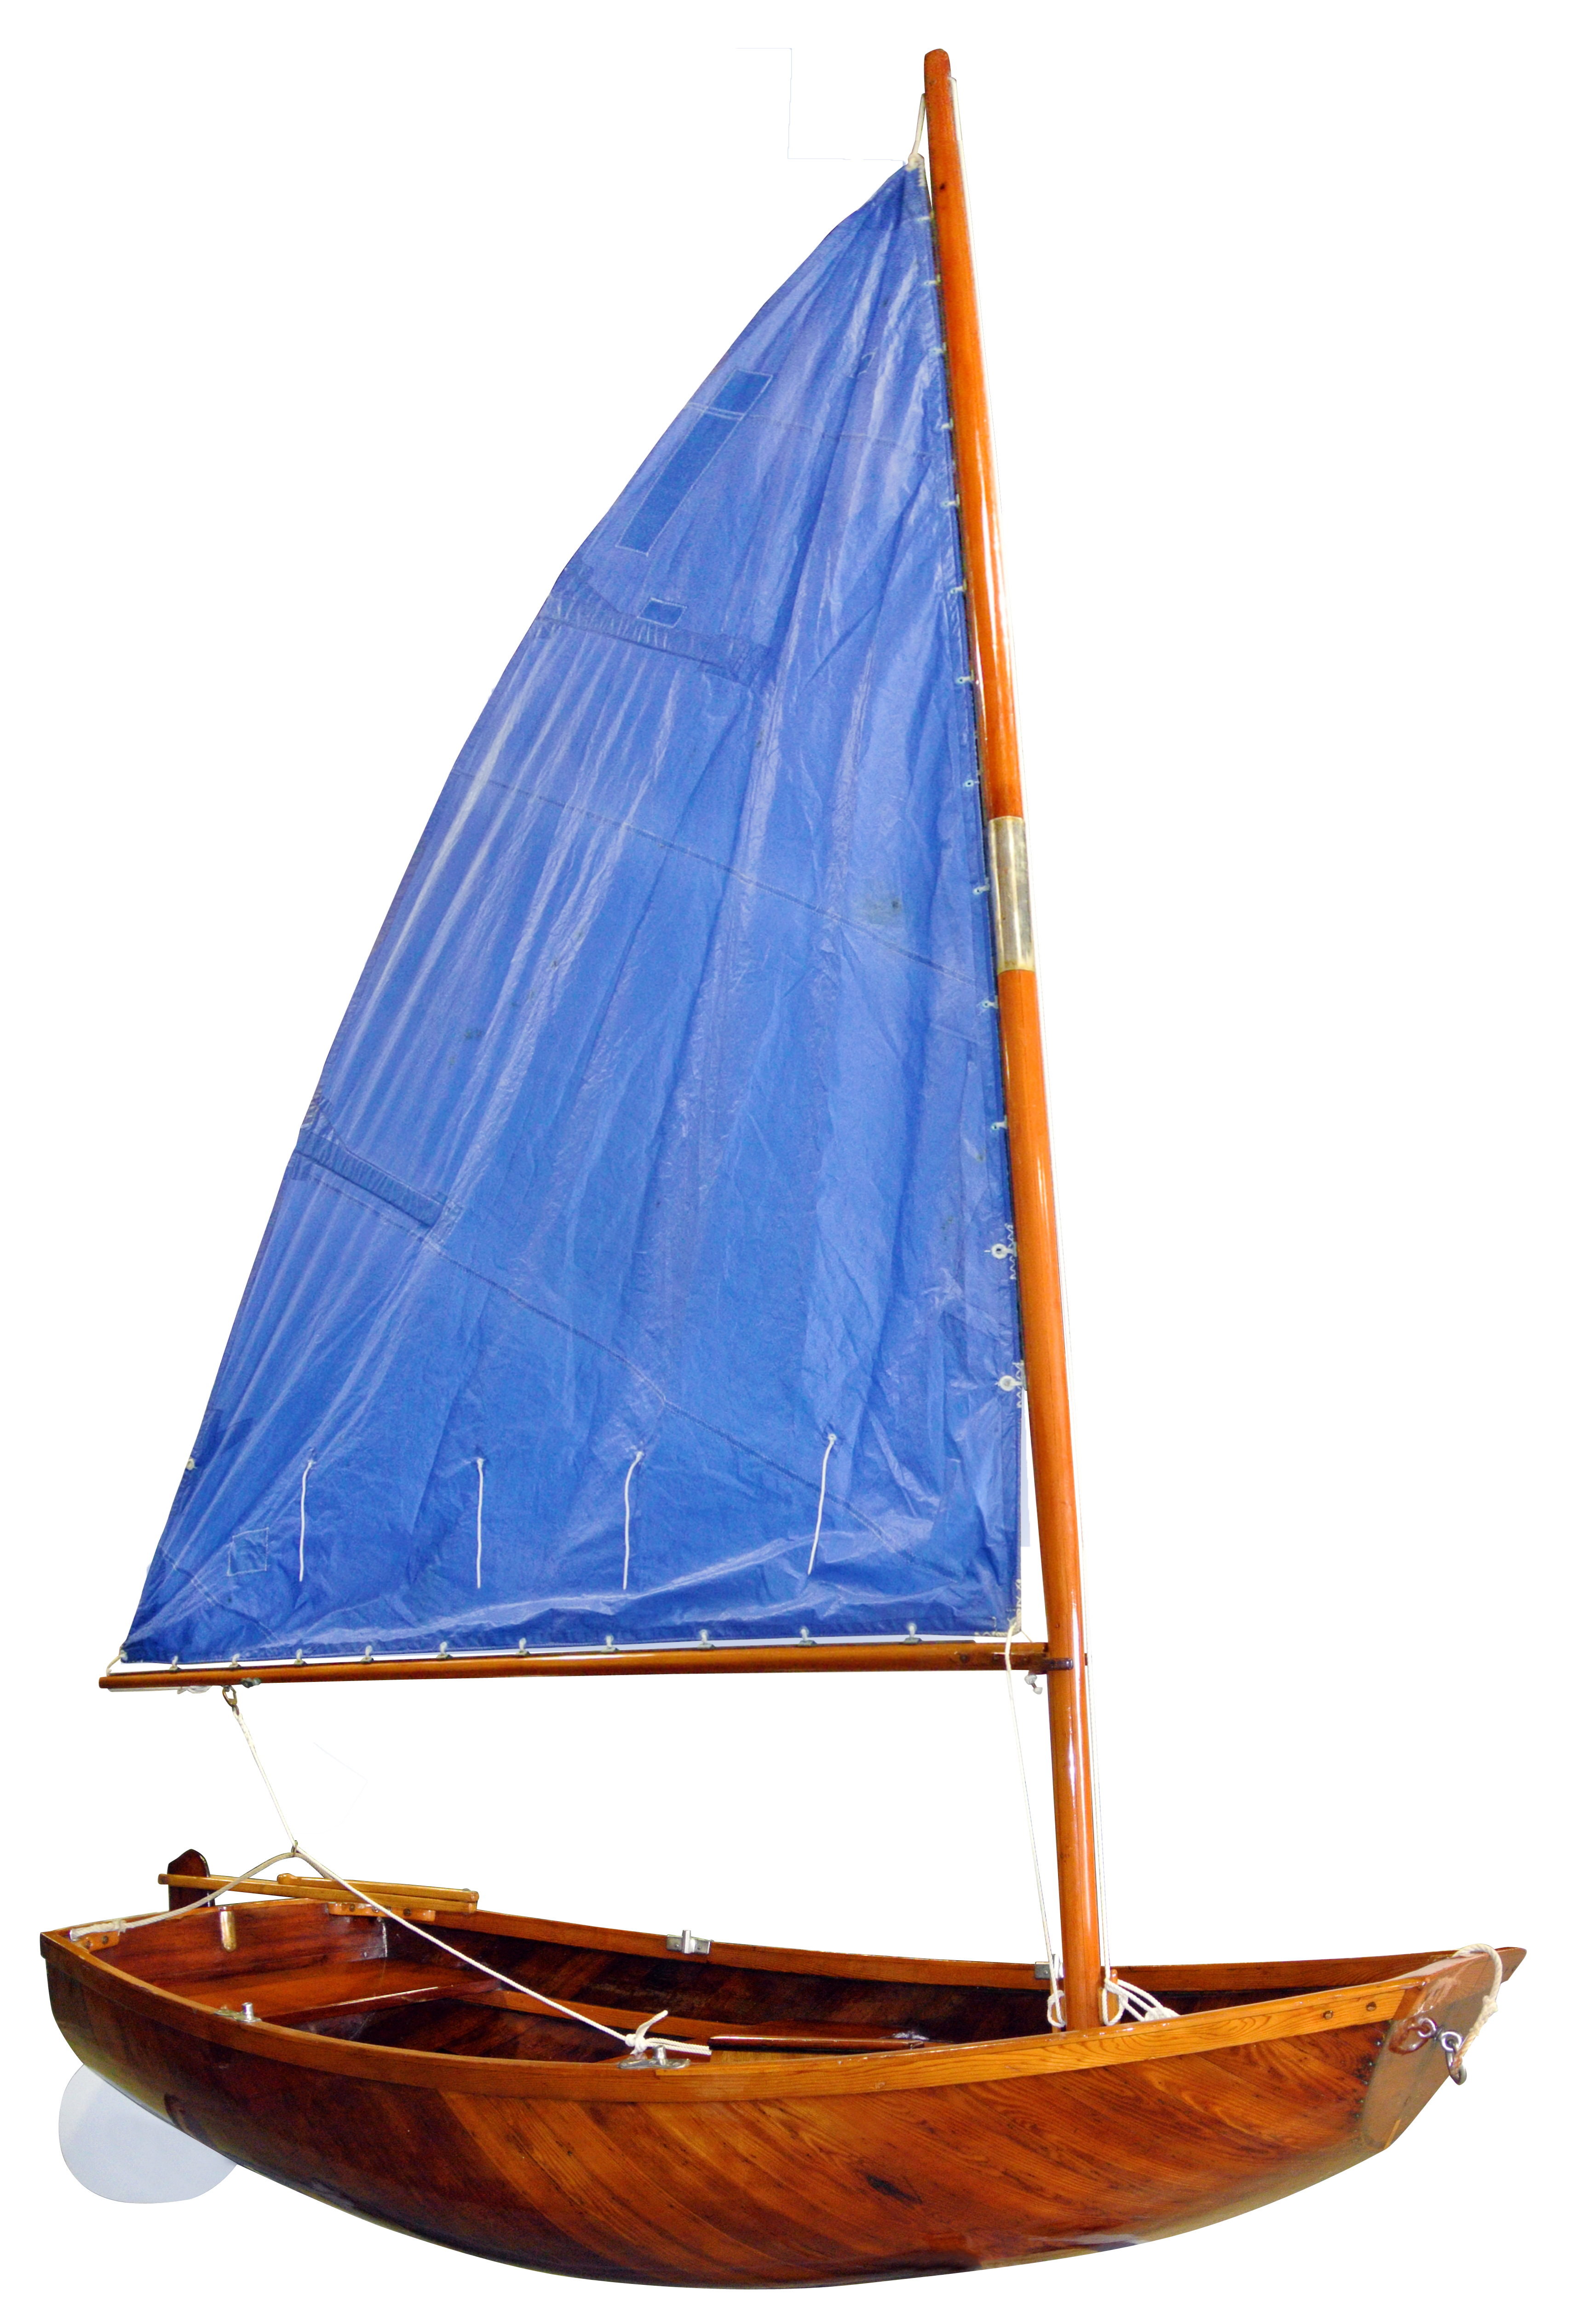 pin Sailing Boat clipart small boat #3 - PNG Sailing - Sailboat PNG HD